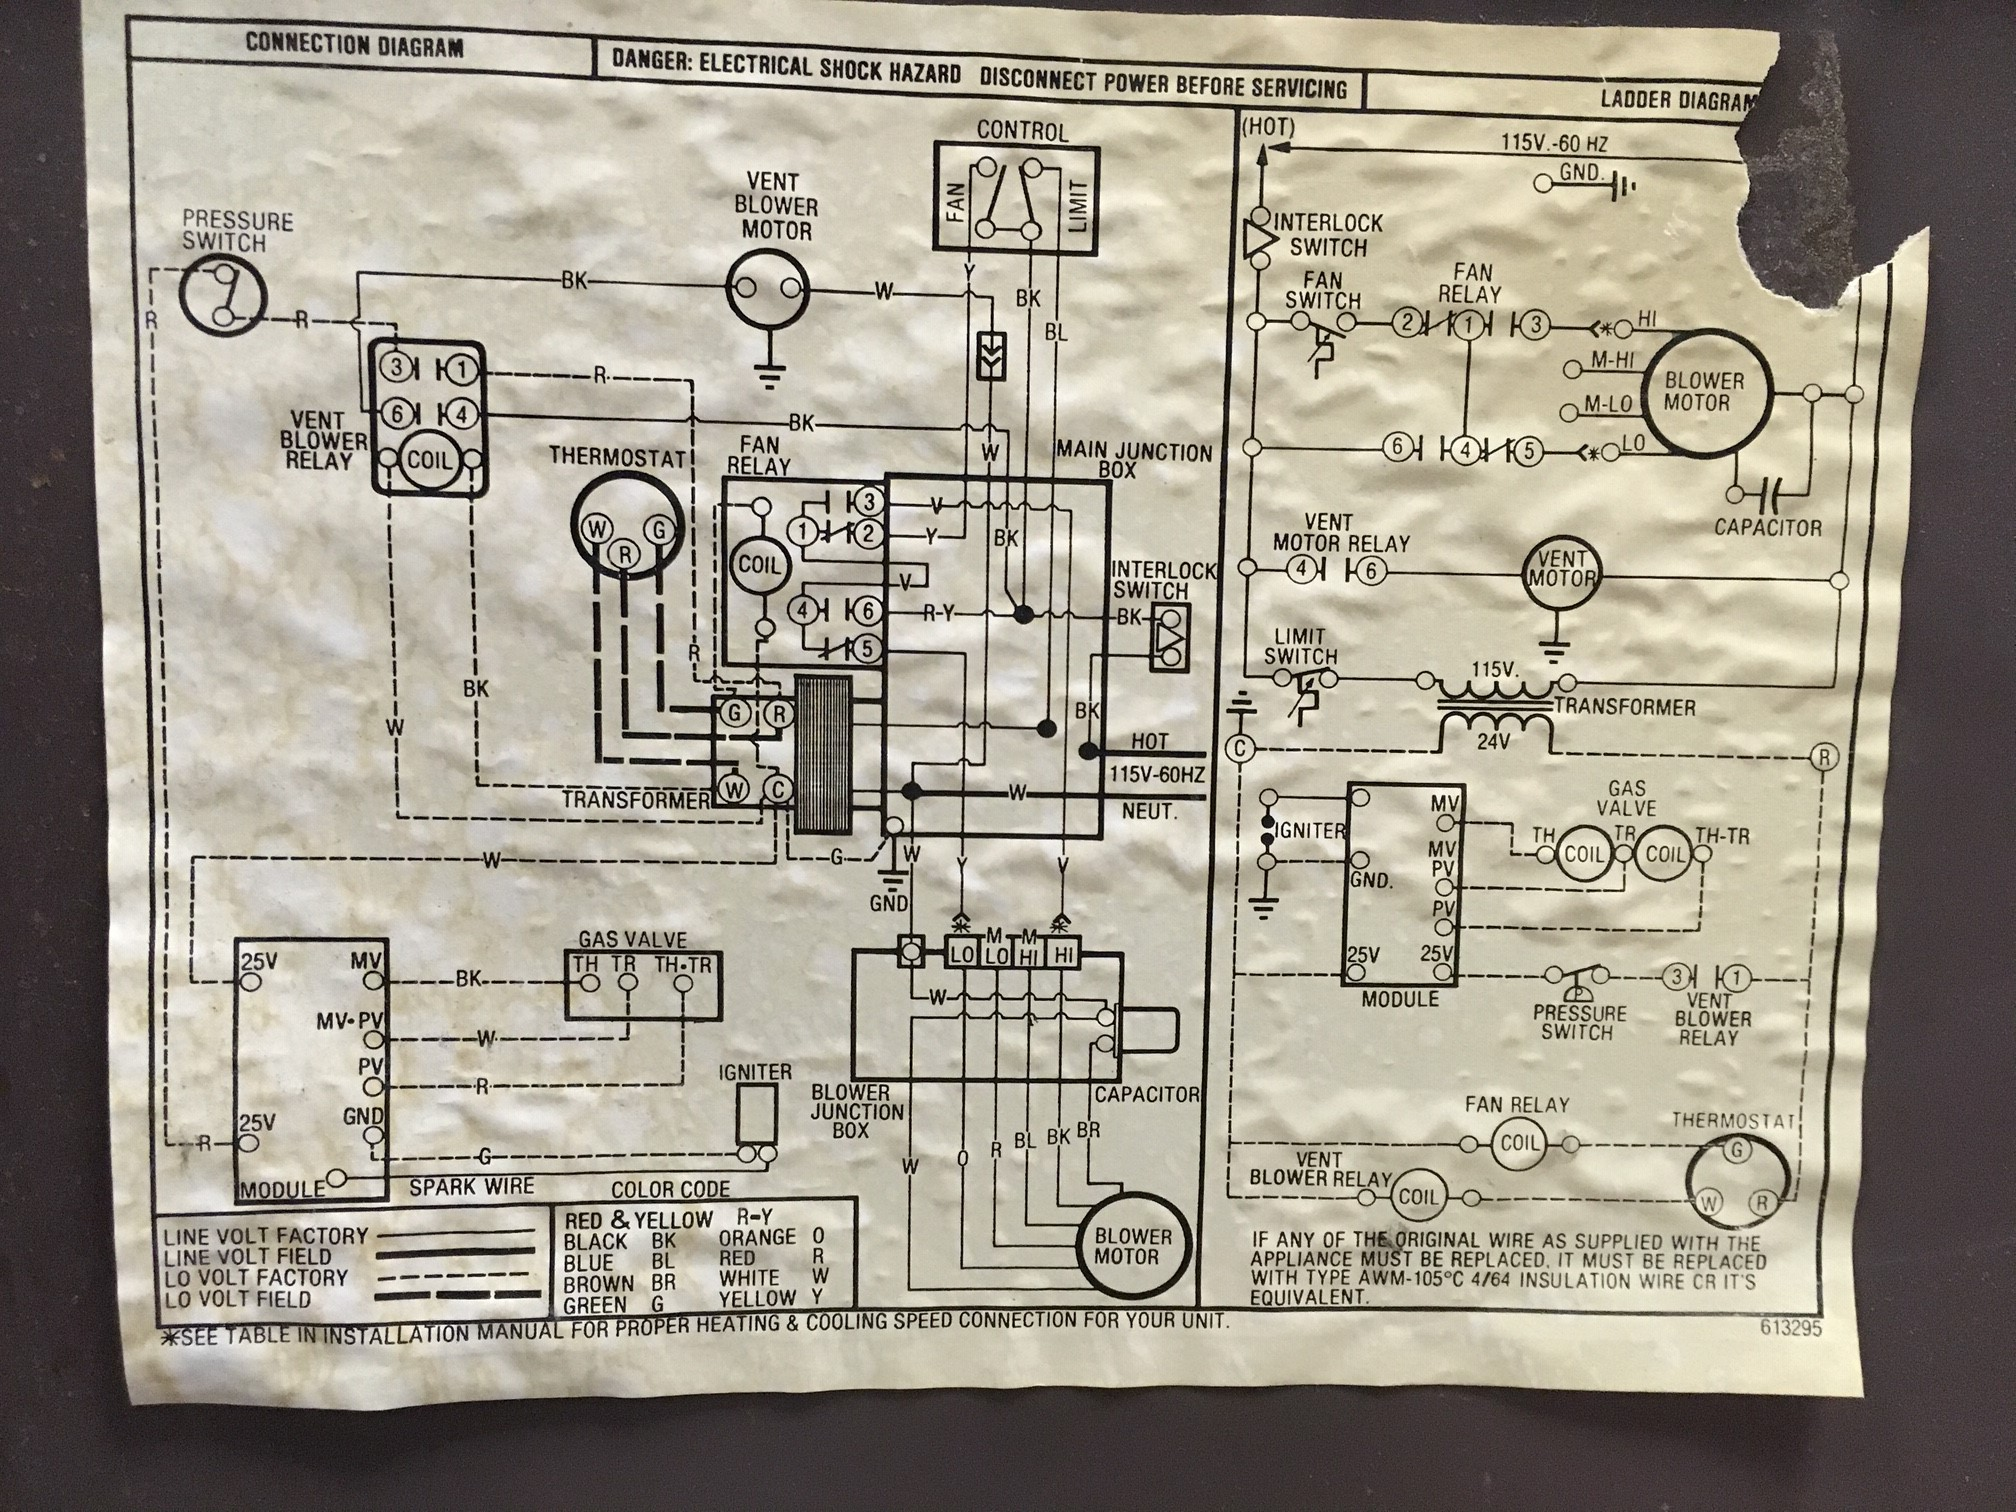 Sears Furnace Wiring Diagram air conditioner wiring diagram ... wiring diagram for mobile home furnace Wiring Schematic Diagram and Worksheet Resources - Wires